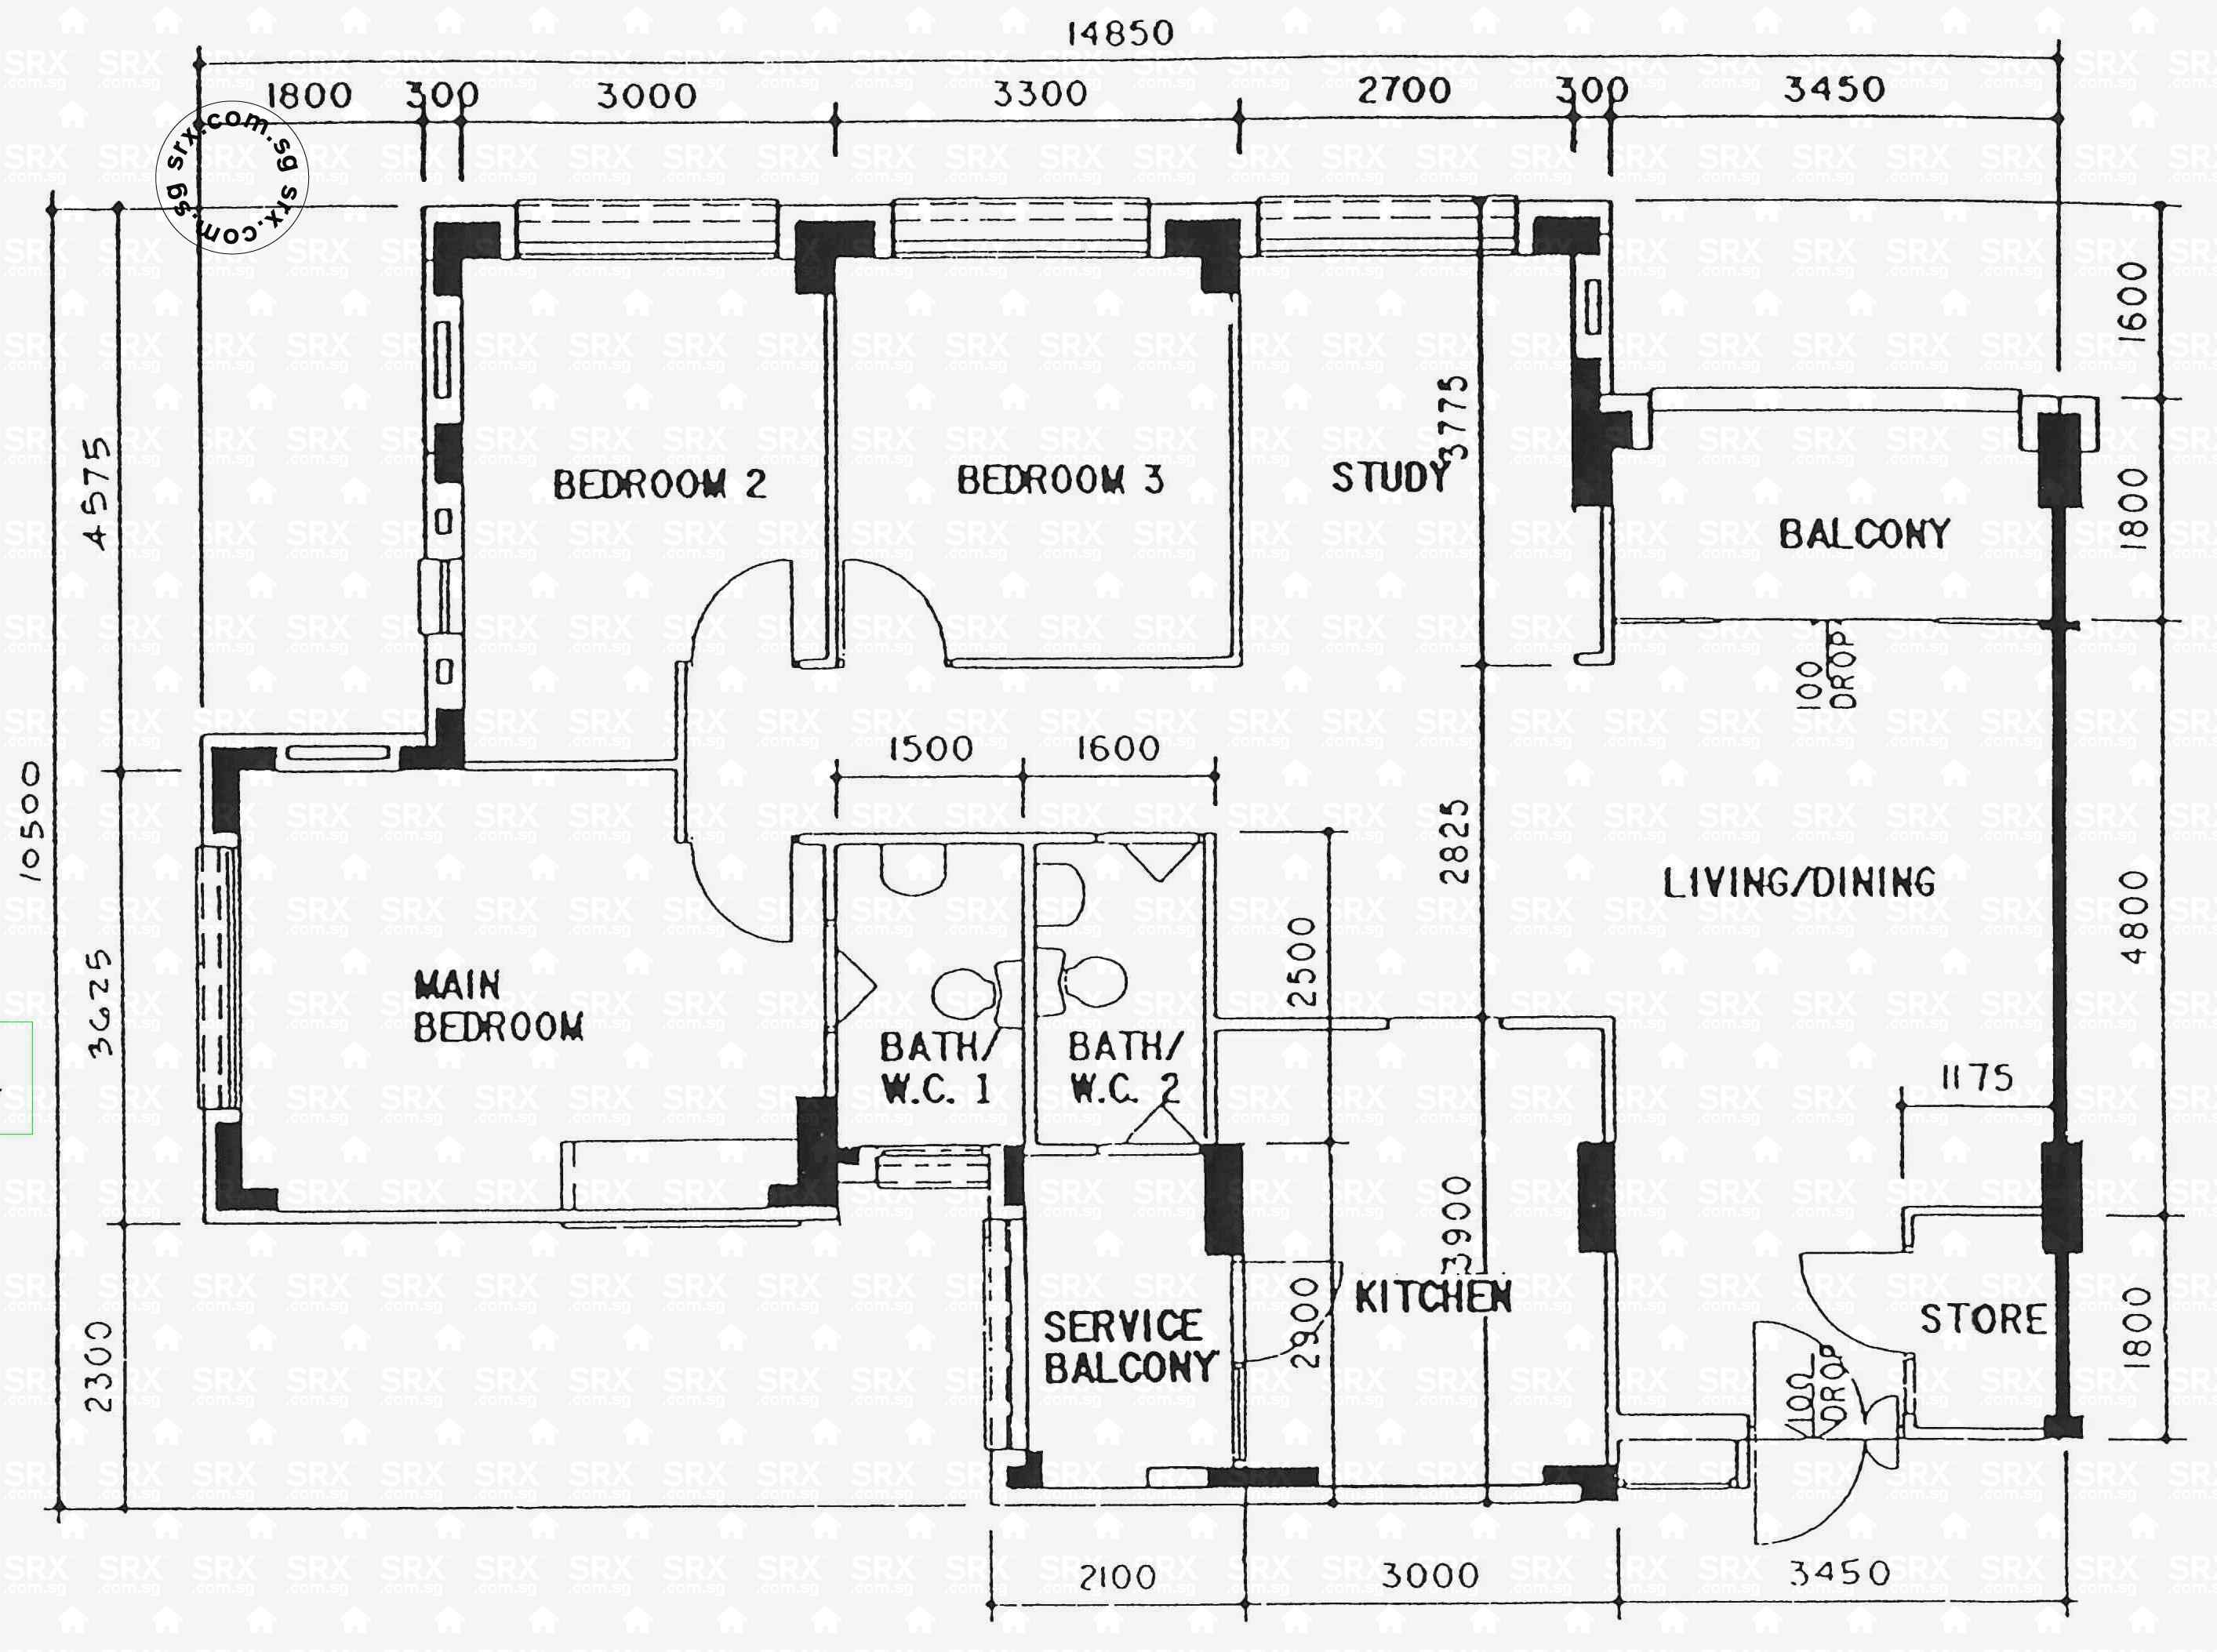 742 evergreen terrace floor plan 100 742 evergreen terrace for 742 evergreen terrace springfield